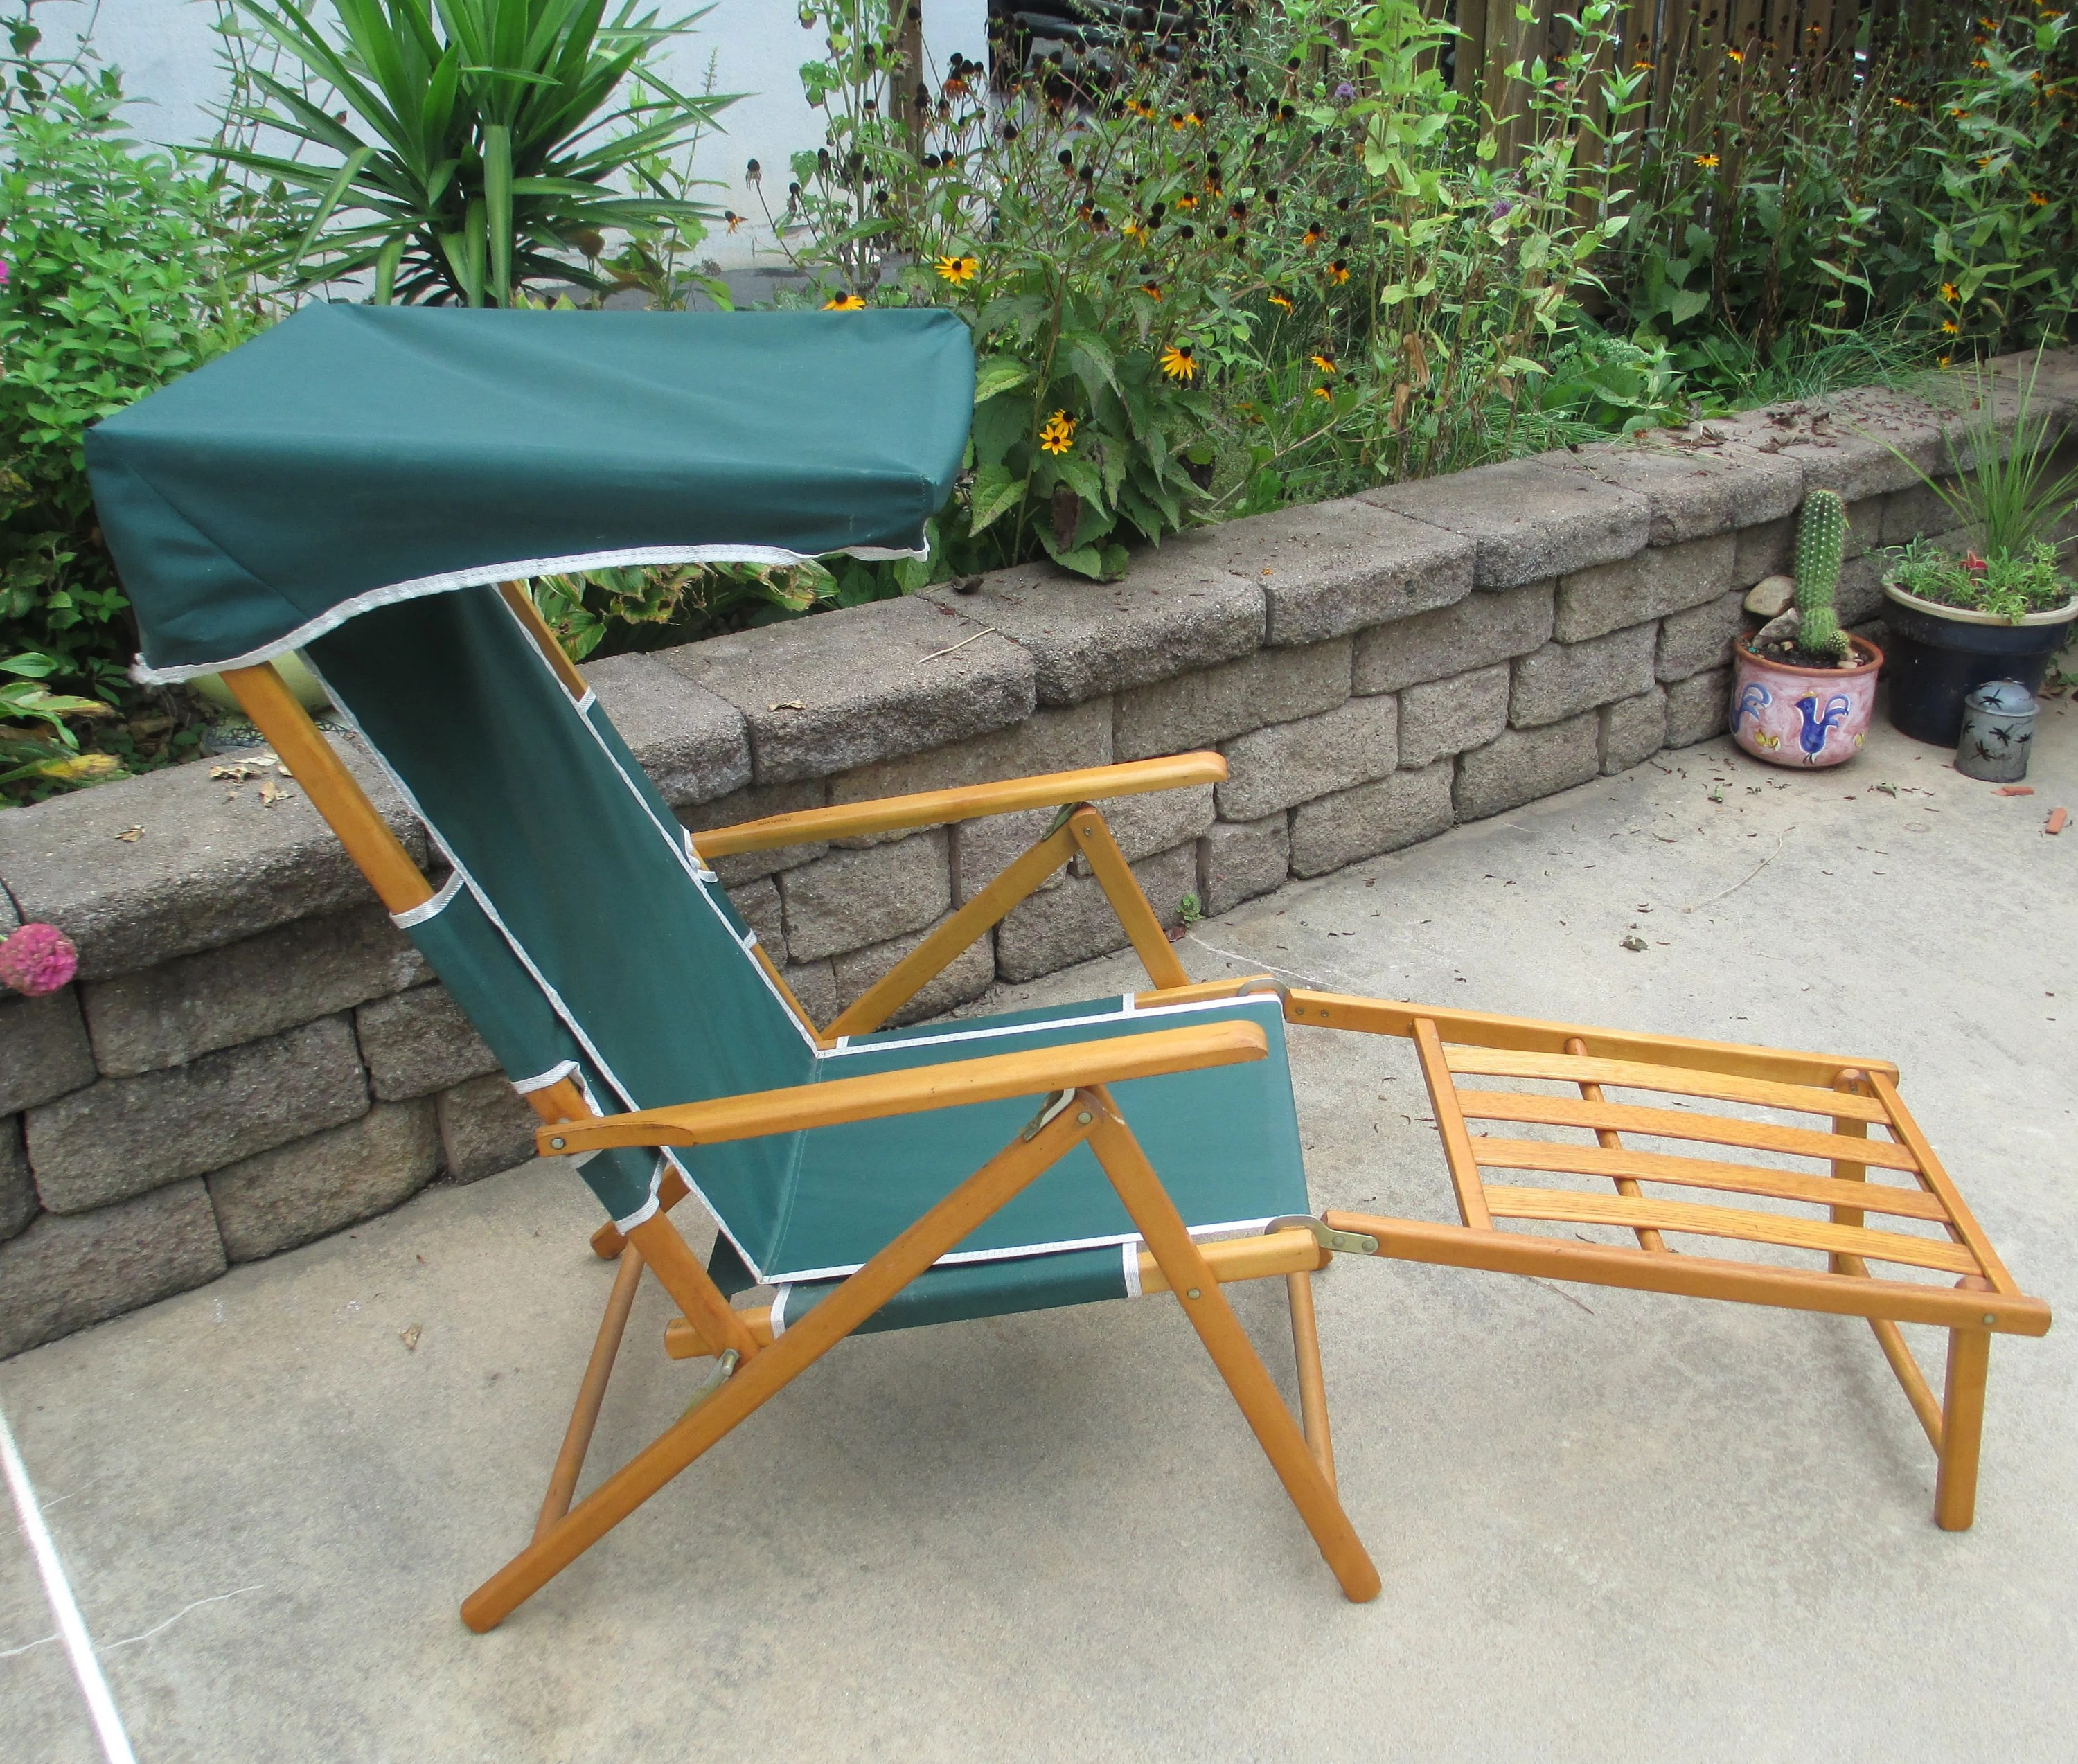 vintage lawn chair luxor spa etsy wood canvas and by telescope casual furniture mid century very solid condition retro beach lounge 5 positions